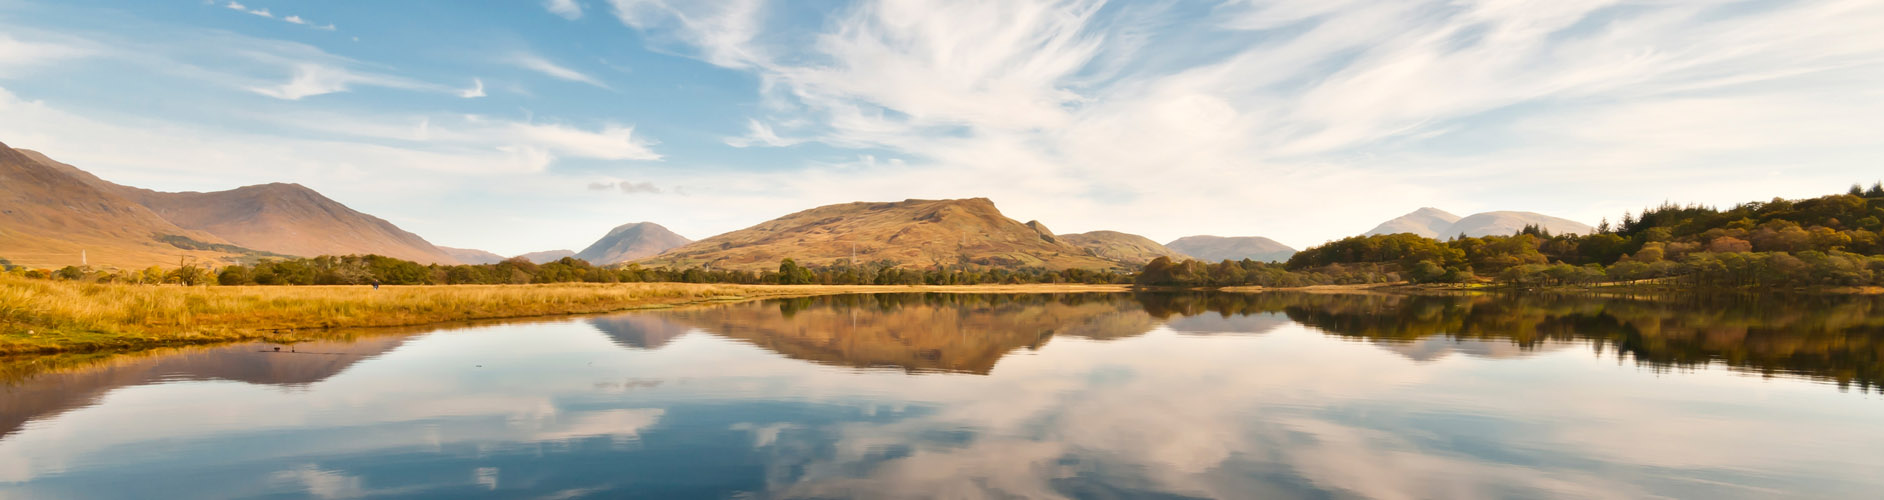 Scottish Cruises in 2018 - Cruises in Scotland | Argyll Cruising